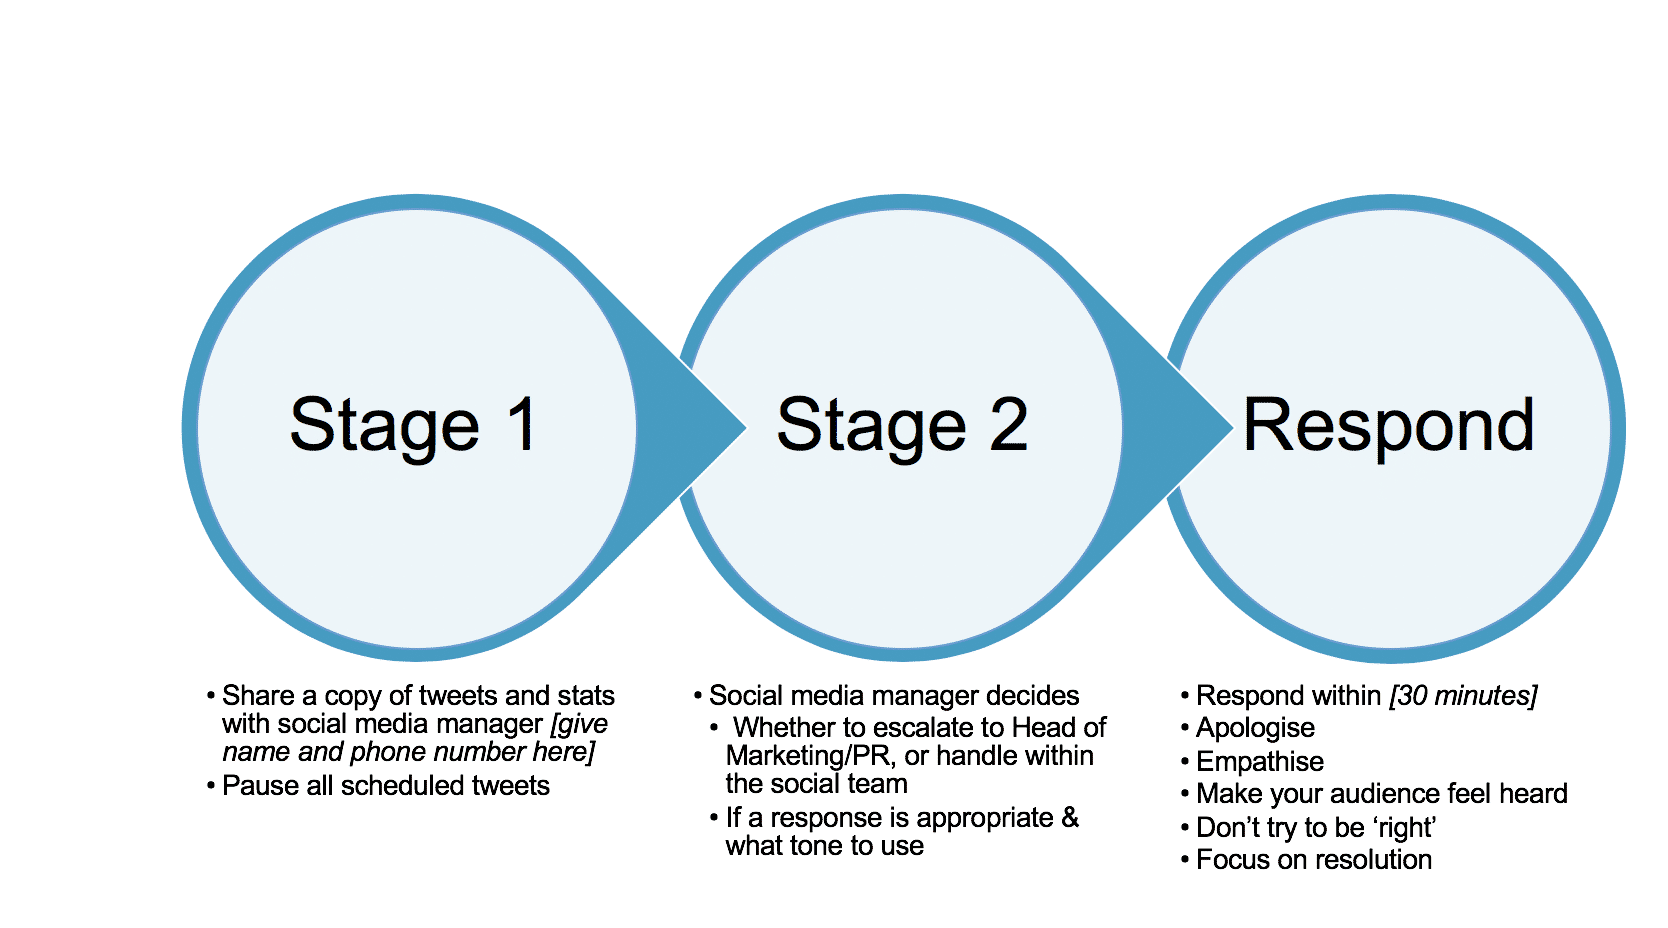 The stages of responding to a PR issue